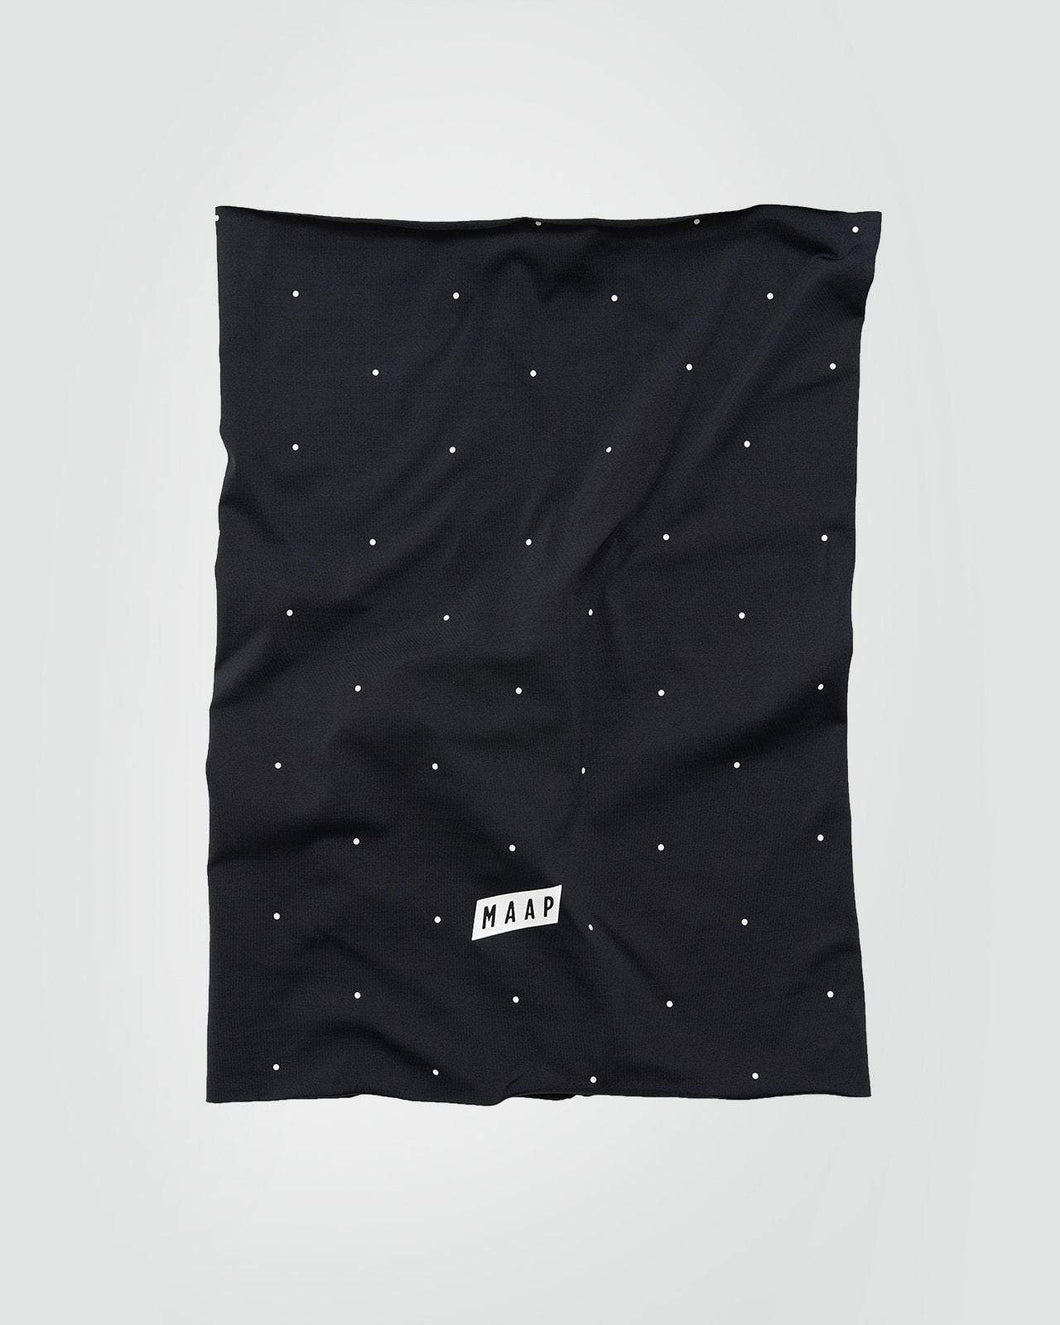 MAAP | Team Neck Warmer - Black